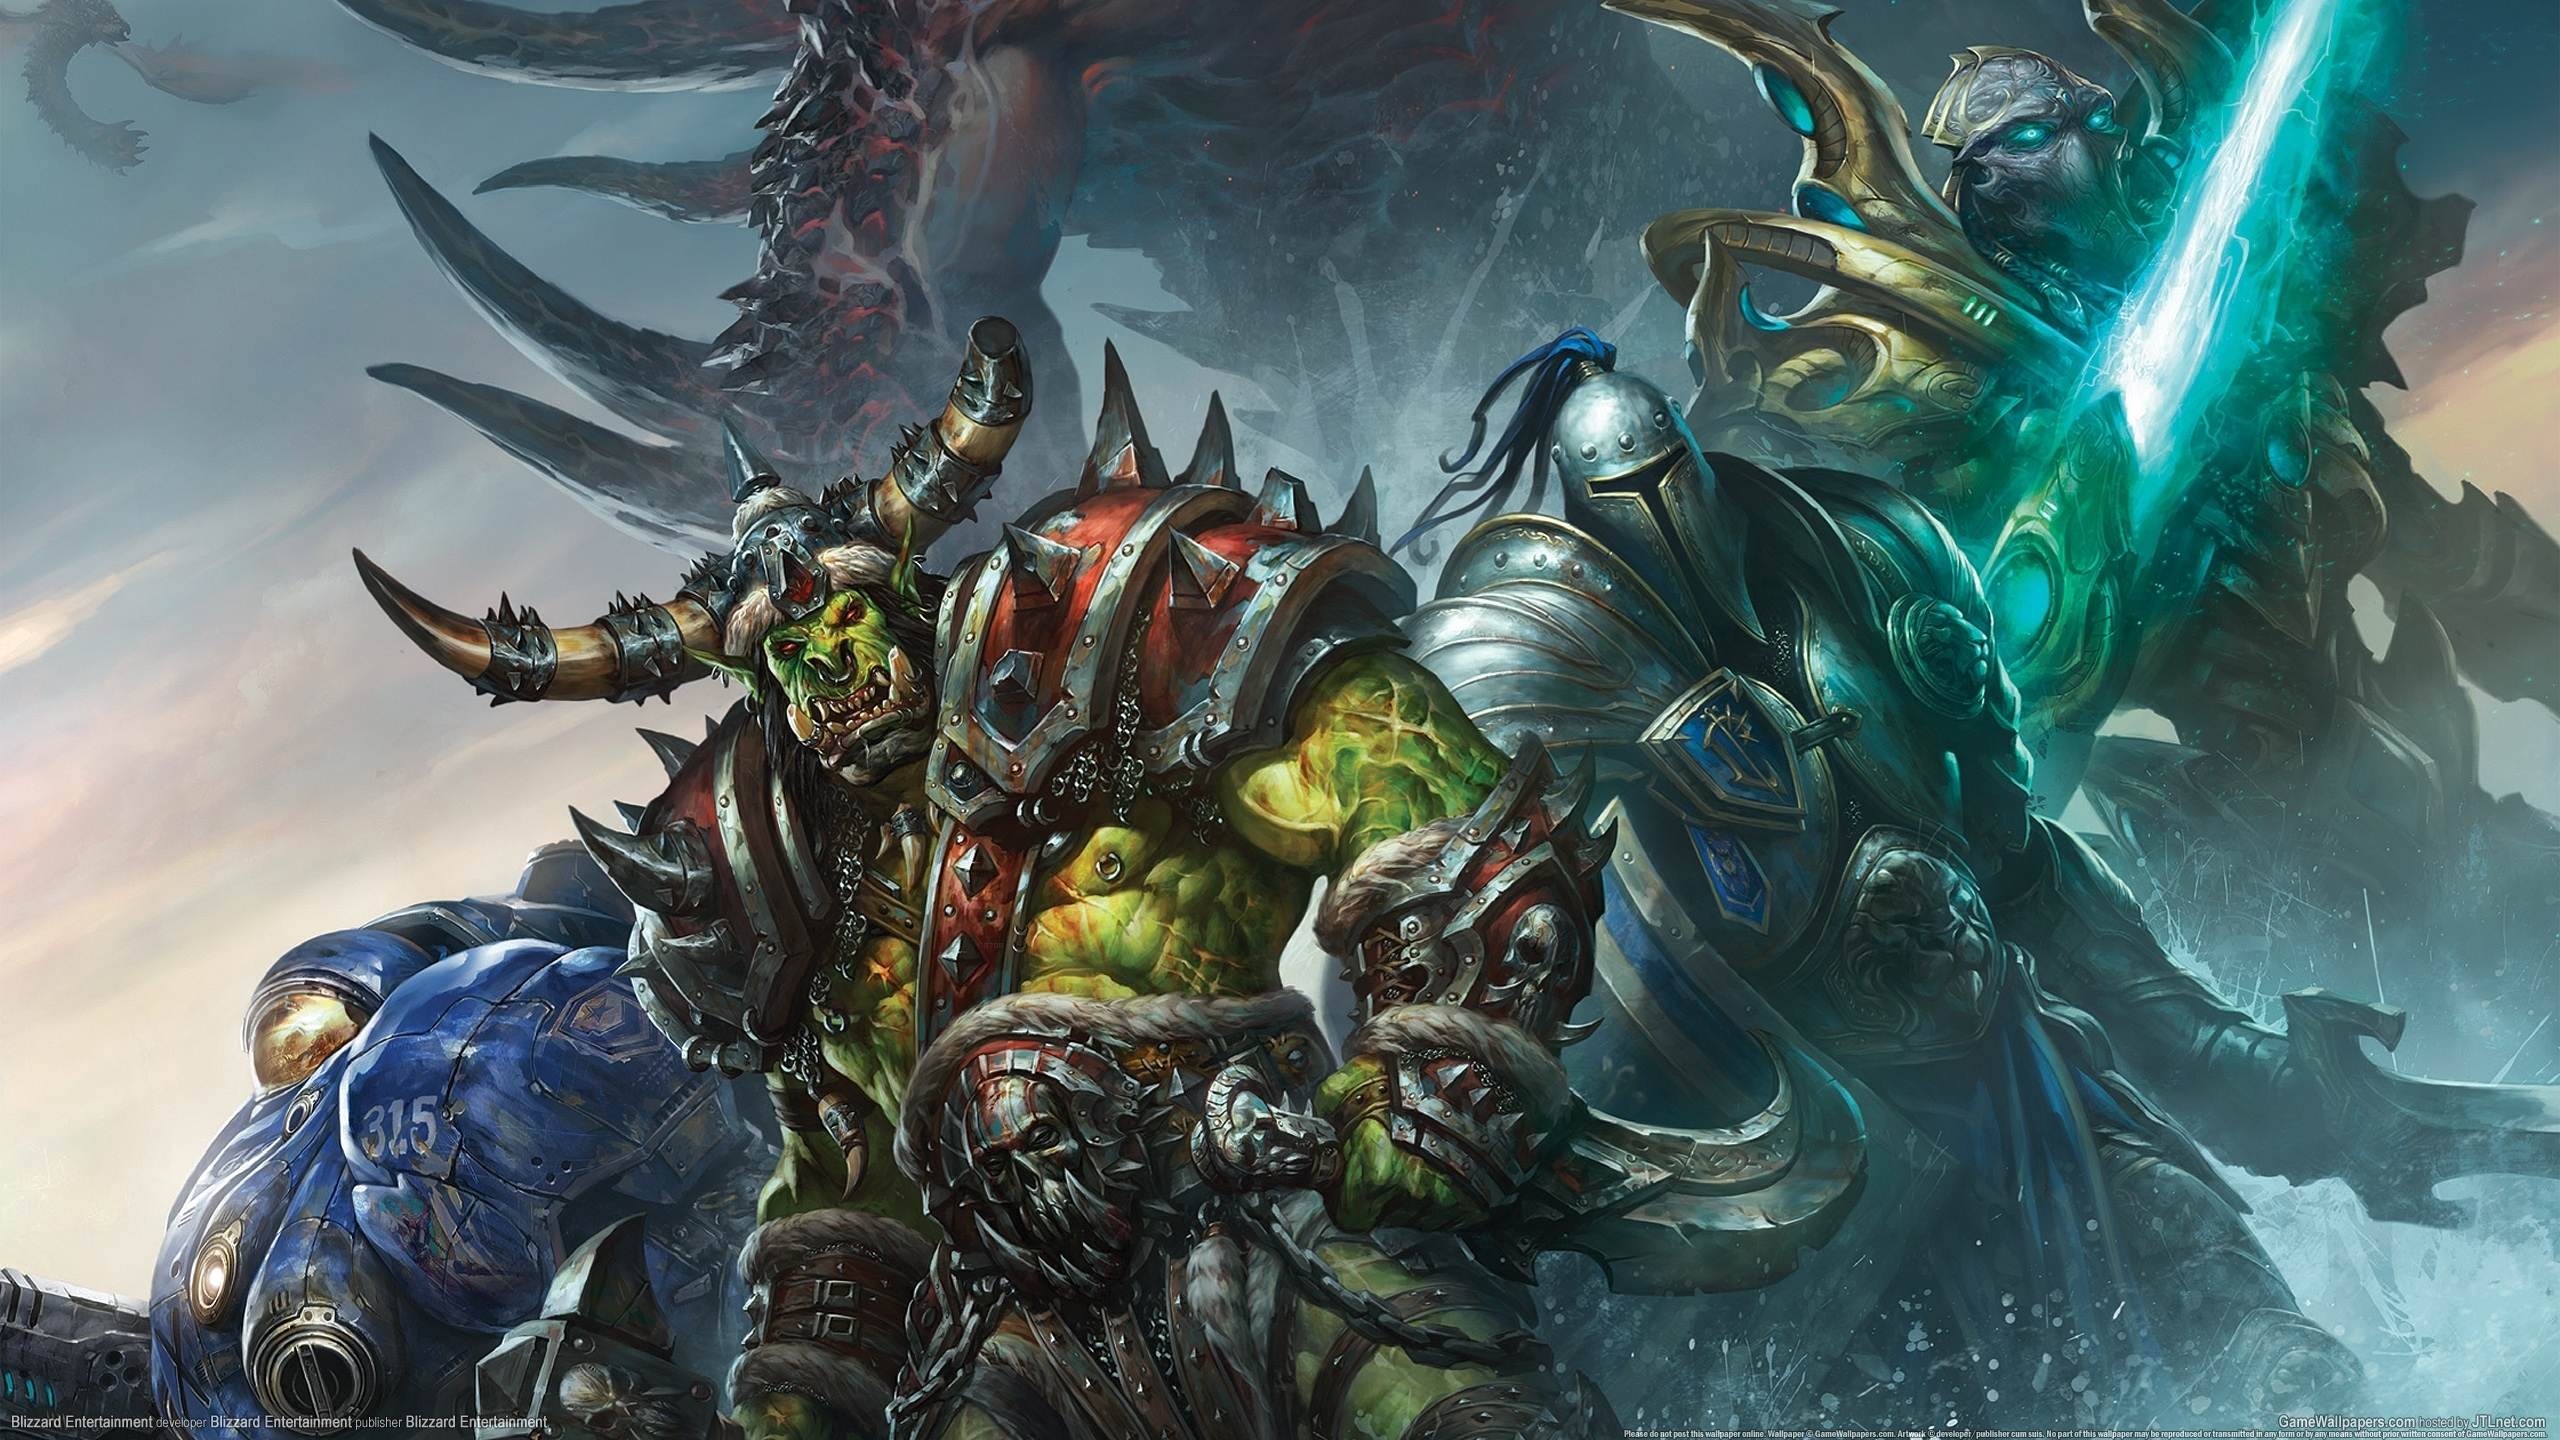 world of warcraft warrior wallpaper - sf wallpaper